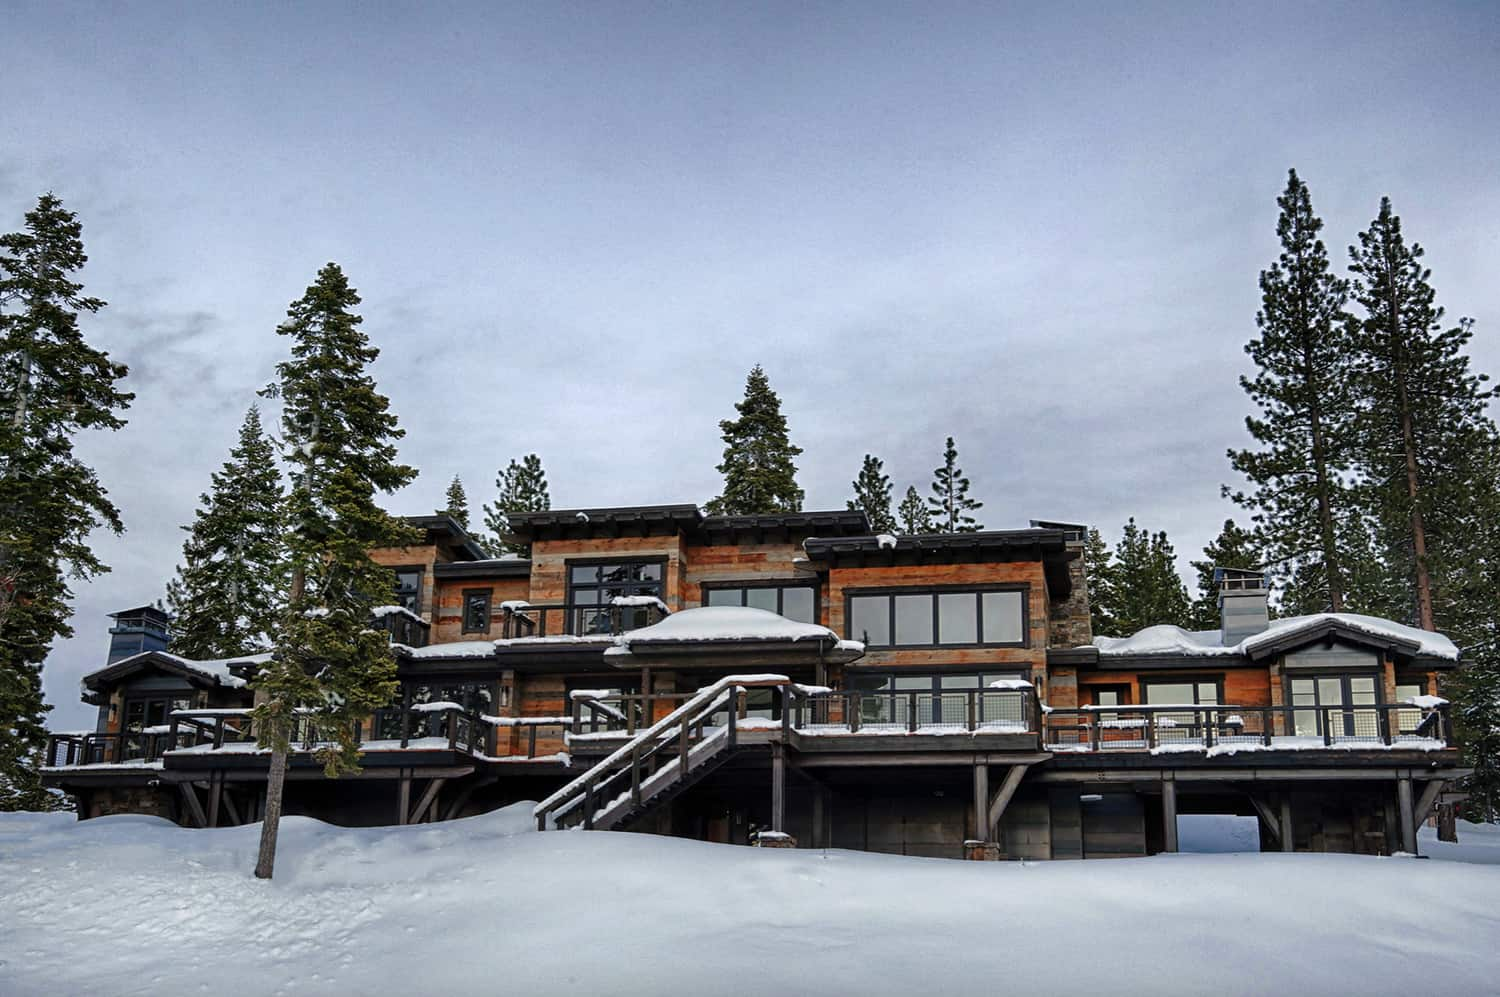 rustic-contemporary-mountain-home-exterior-with-snow